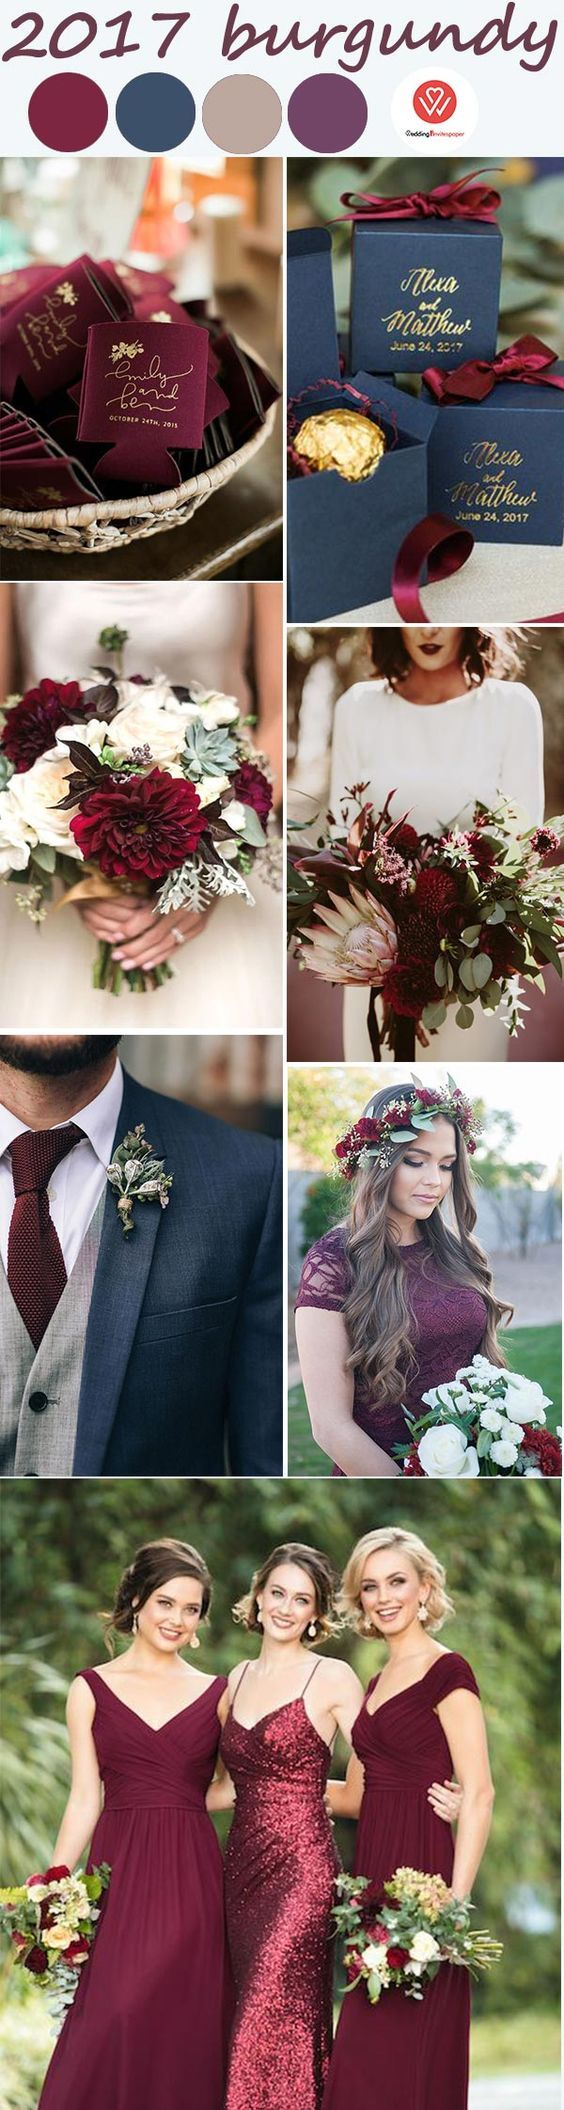 if you like our pin, plz follow us, then we will follow back, thank you so much! burgundy and navy blue rustic-themed wedding dress, bouquet, favor